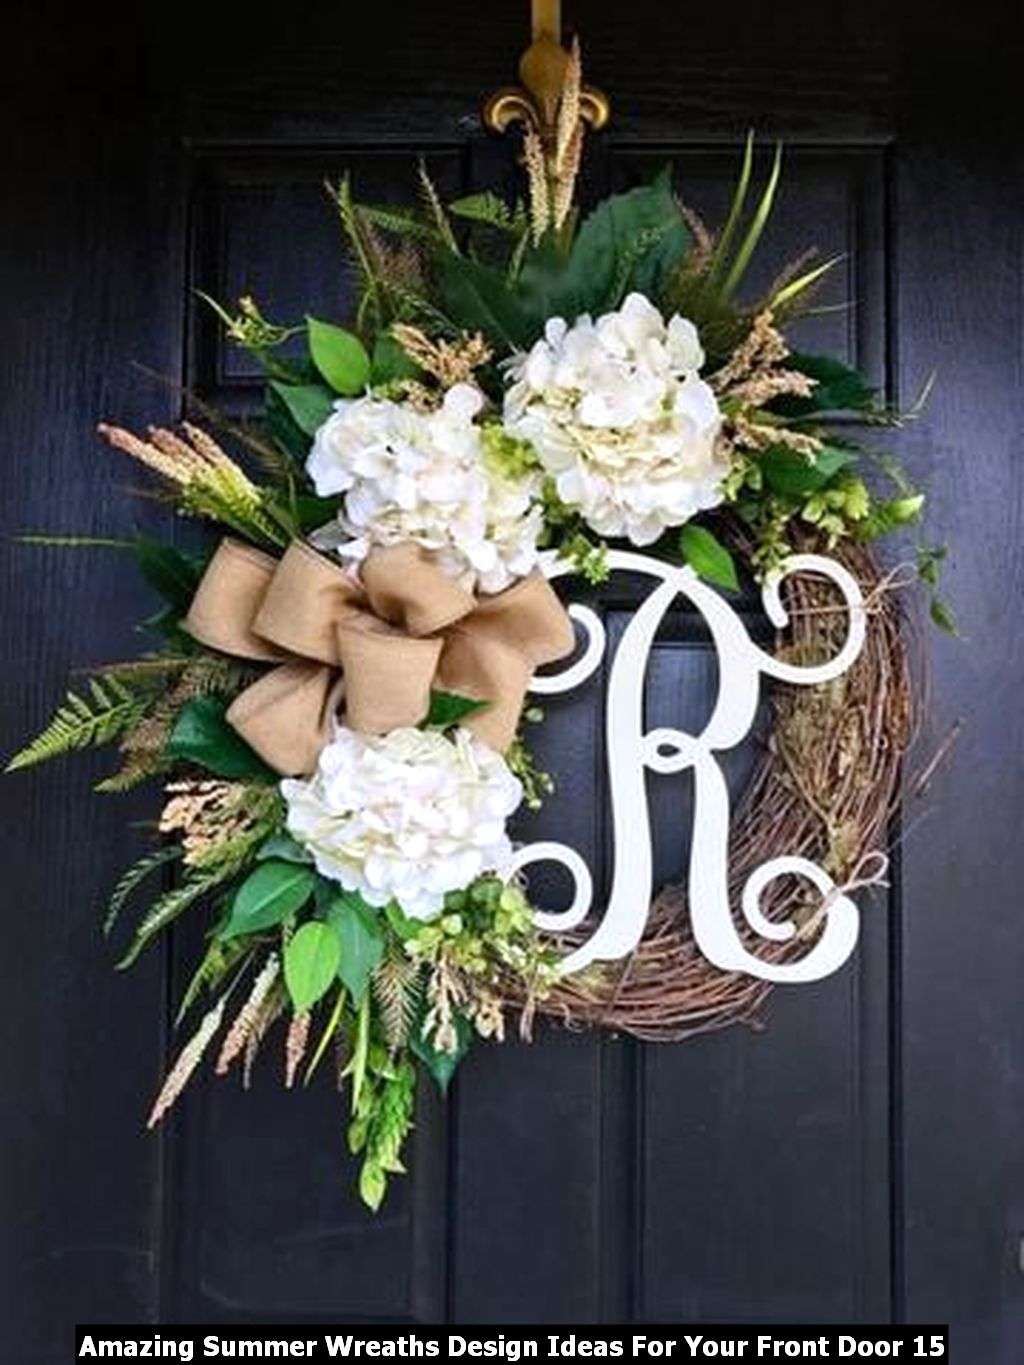 Amazing Summer Wreaths Design Ideas For Your Front Door 15